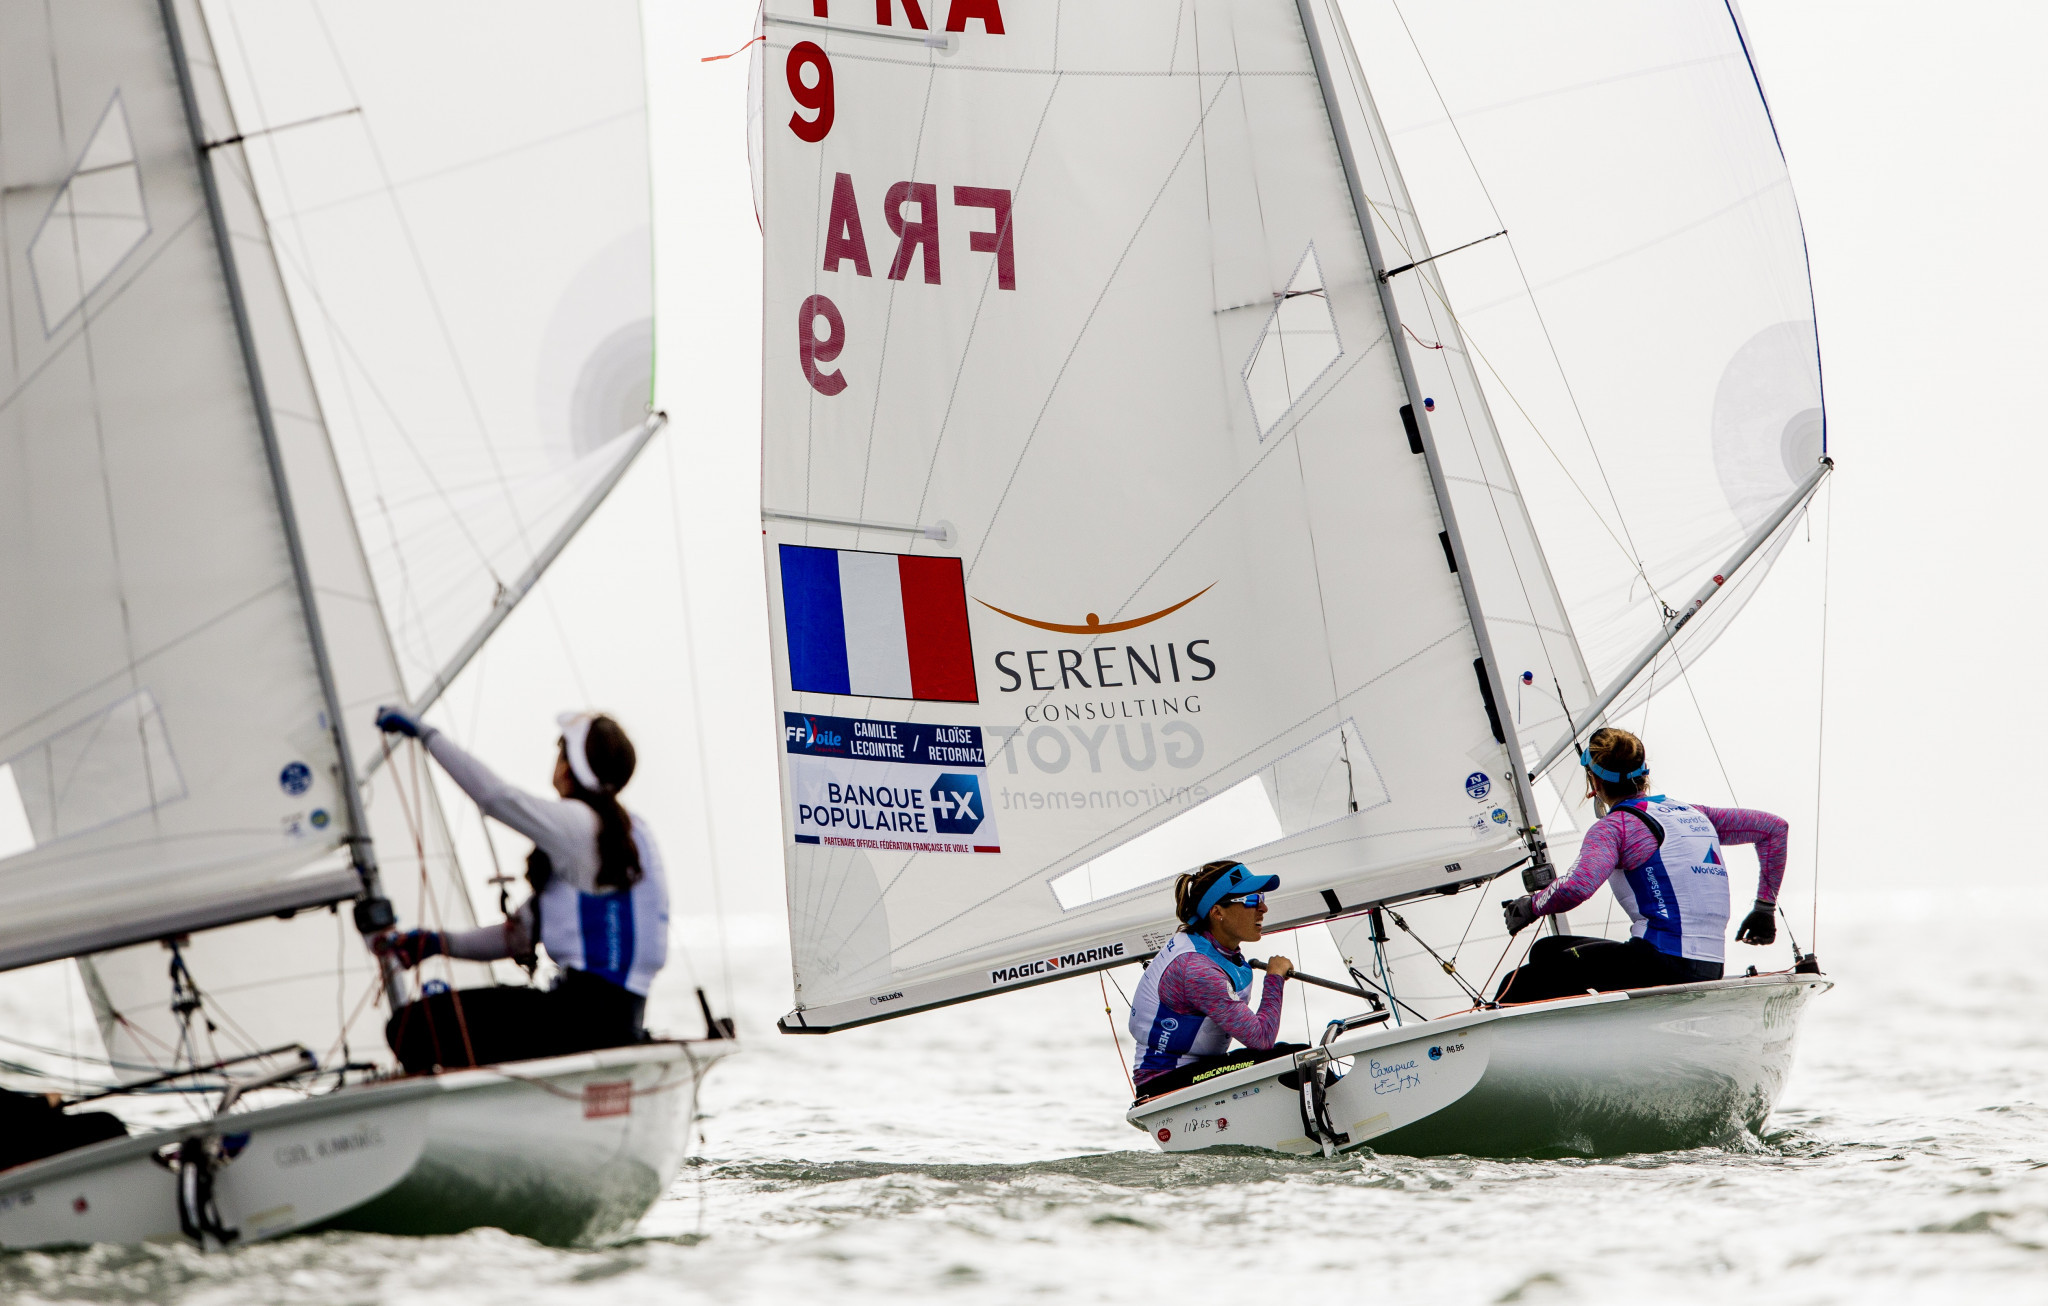 Olympic hopefuls Lecointre and Retornaz start strongly at Sailing World Cup in Miami